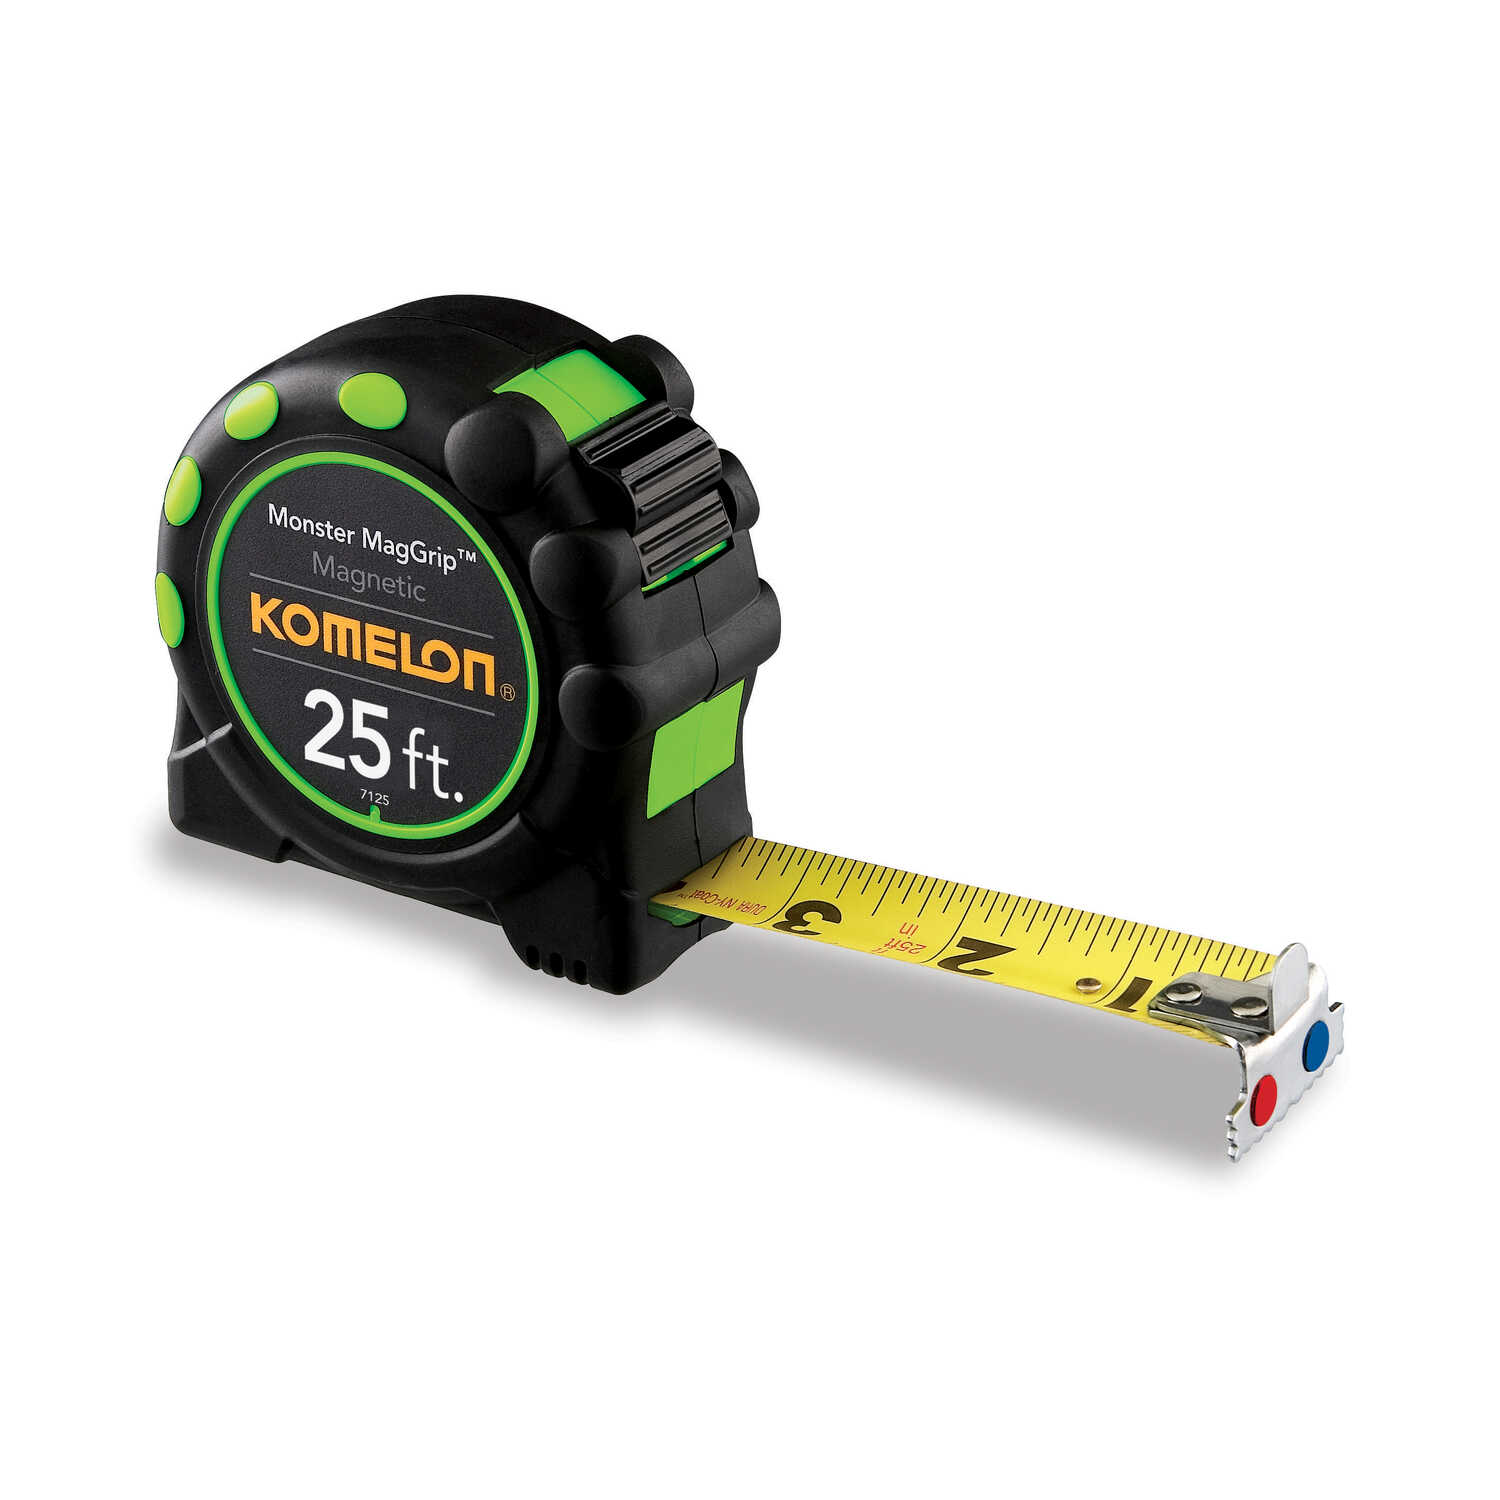 Komelon  Magnetic  25 ft. L x 1 in. W Tape Measure  Black  1 pk